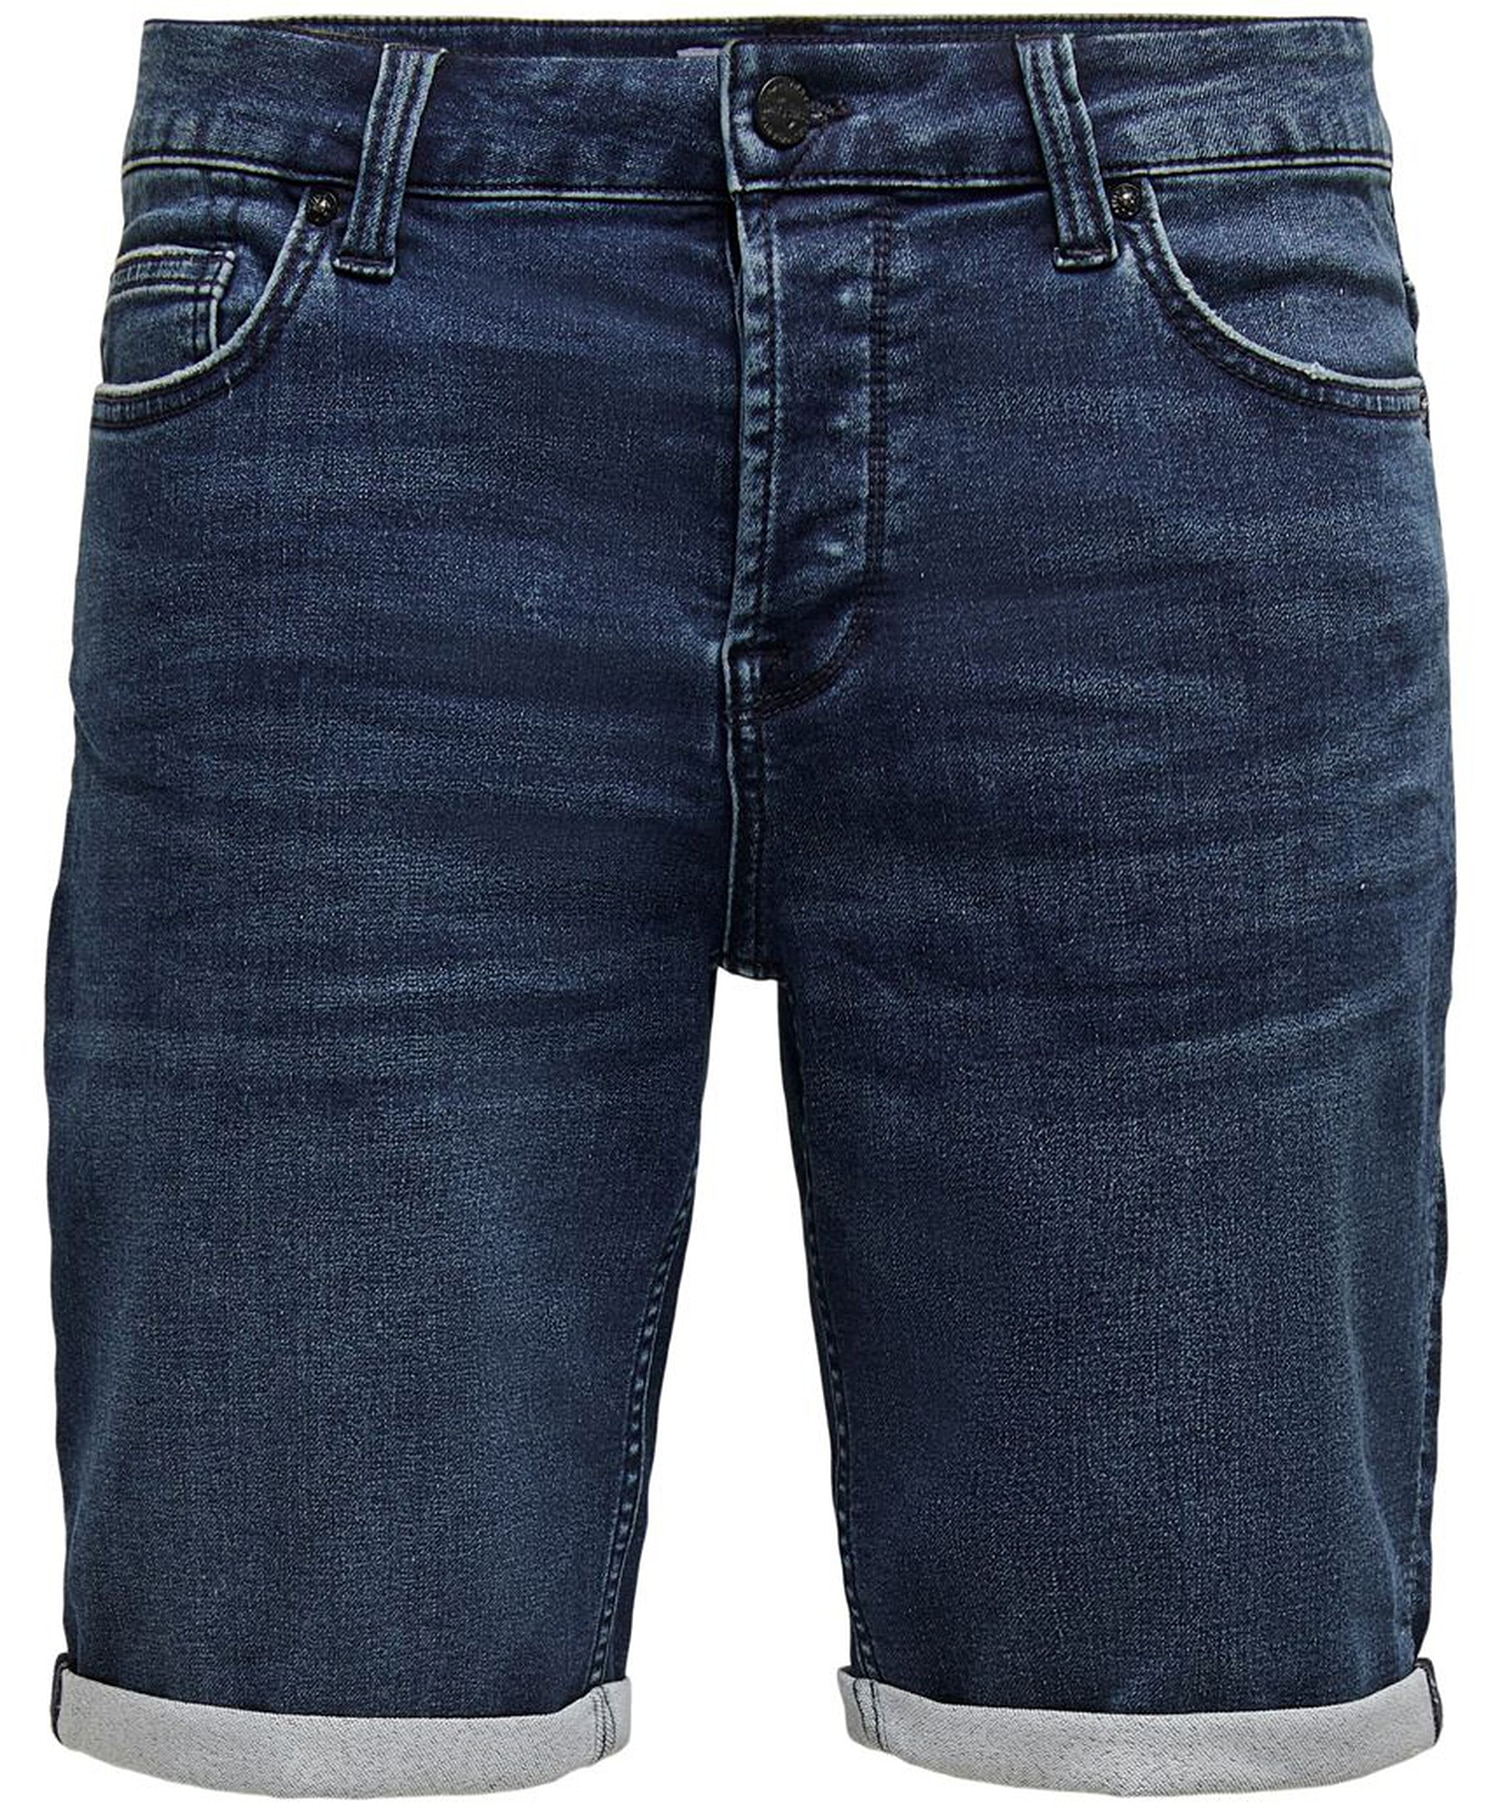 Only & Sons Life denim shorts